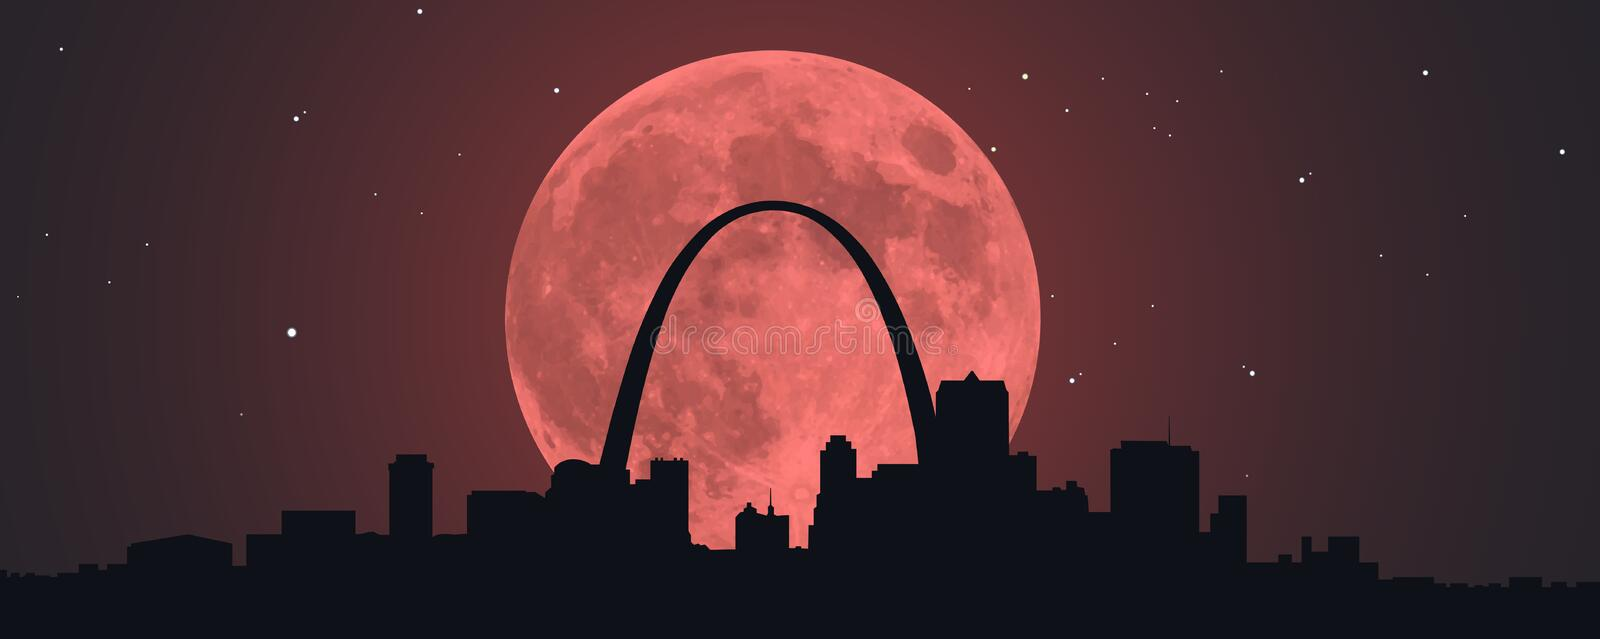 Blood Red Moon Over STL stock illustration